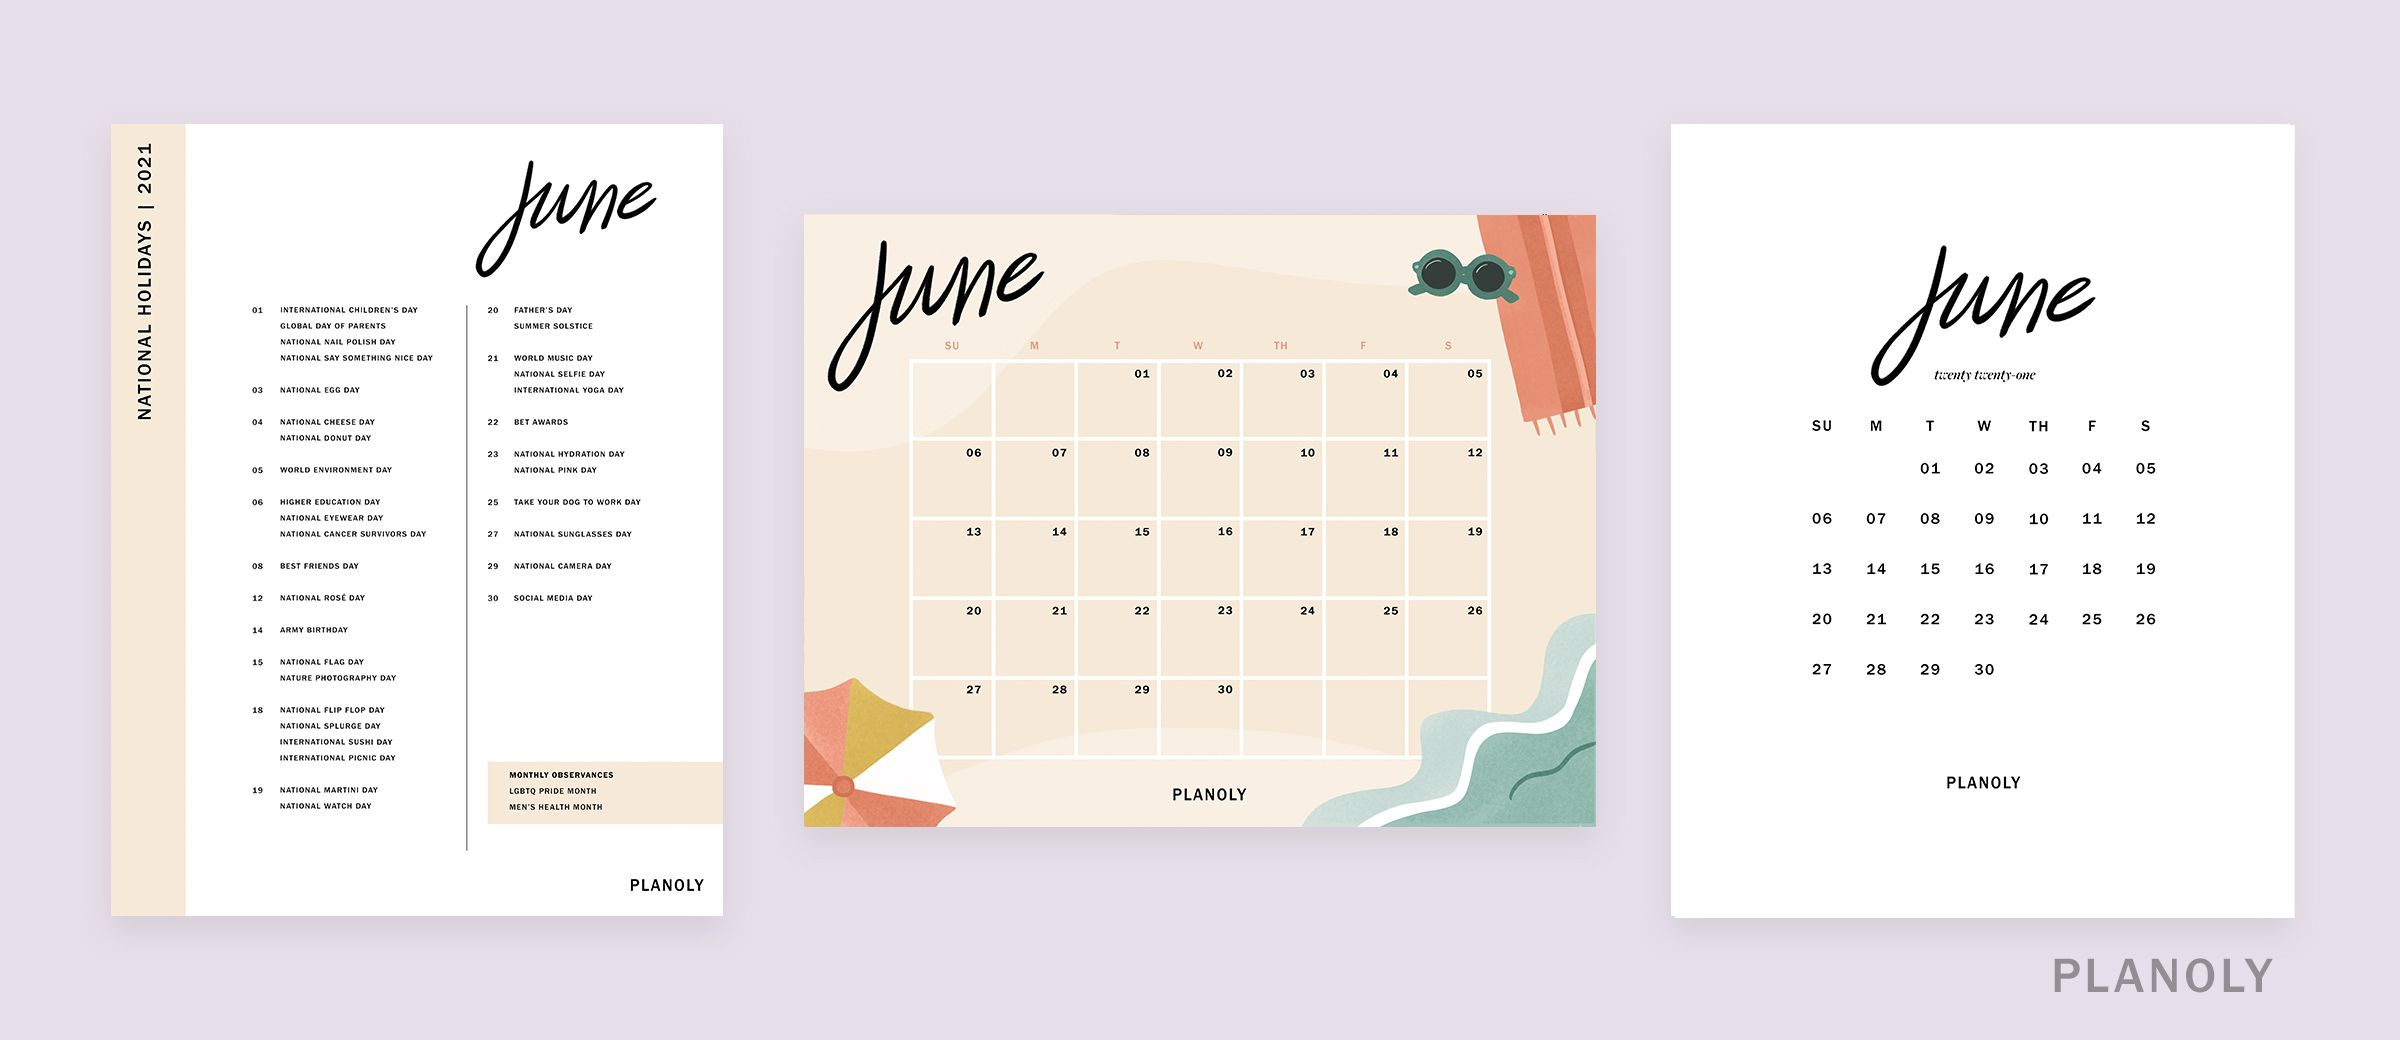 PLANOLY-IG Feed-Q2 Content Calendars-Image 3